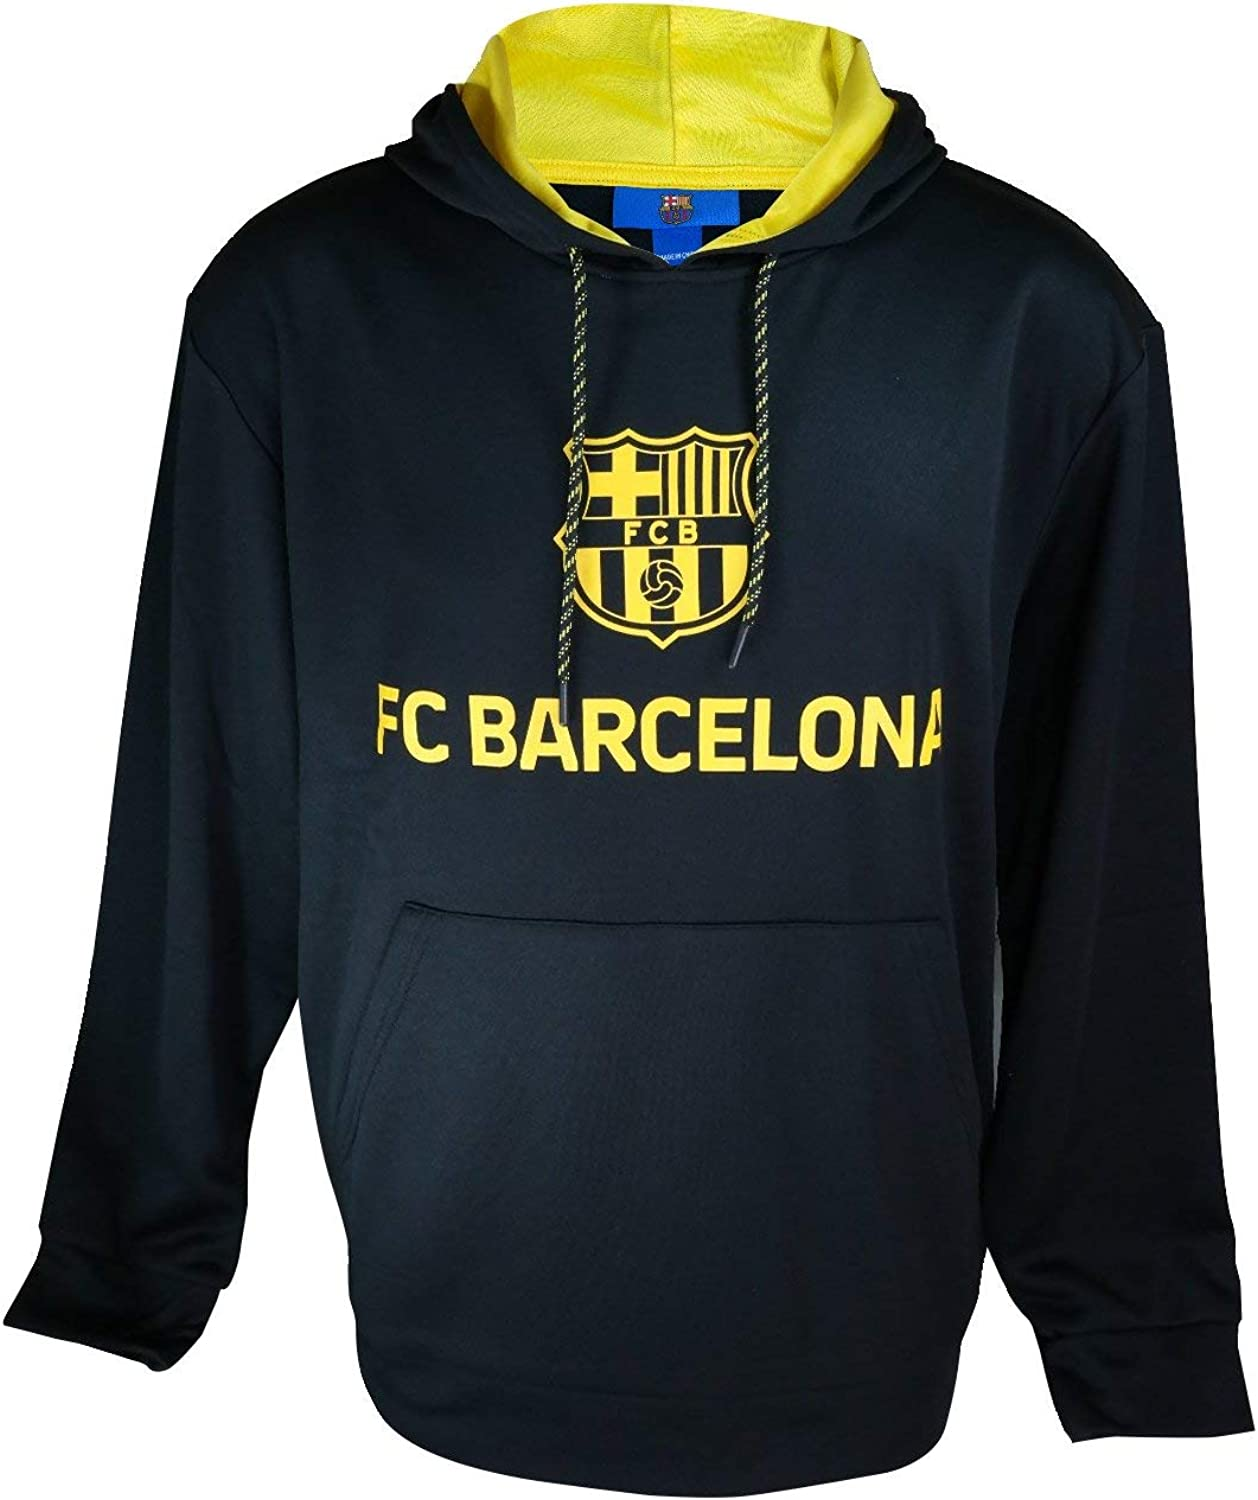 Icon Sports Group FC Barcelona Pullover Official Soccer Hoodie Sweater 007